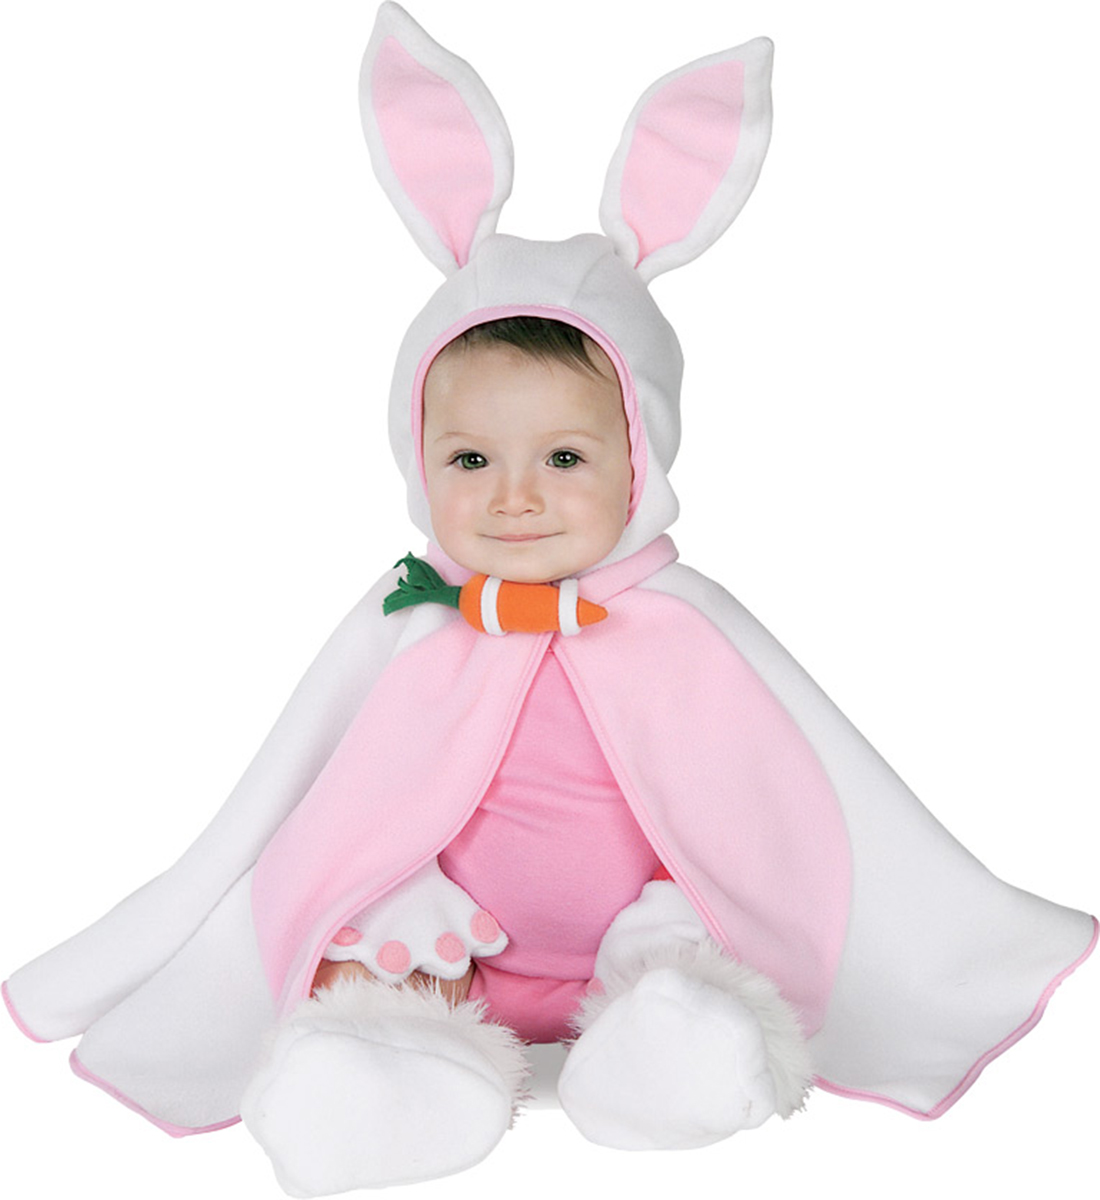 Morris costumes RU11742I Lil Bunny Infant Costume 3-12